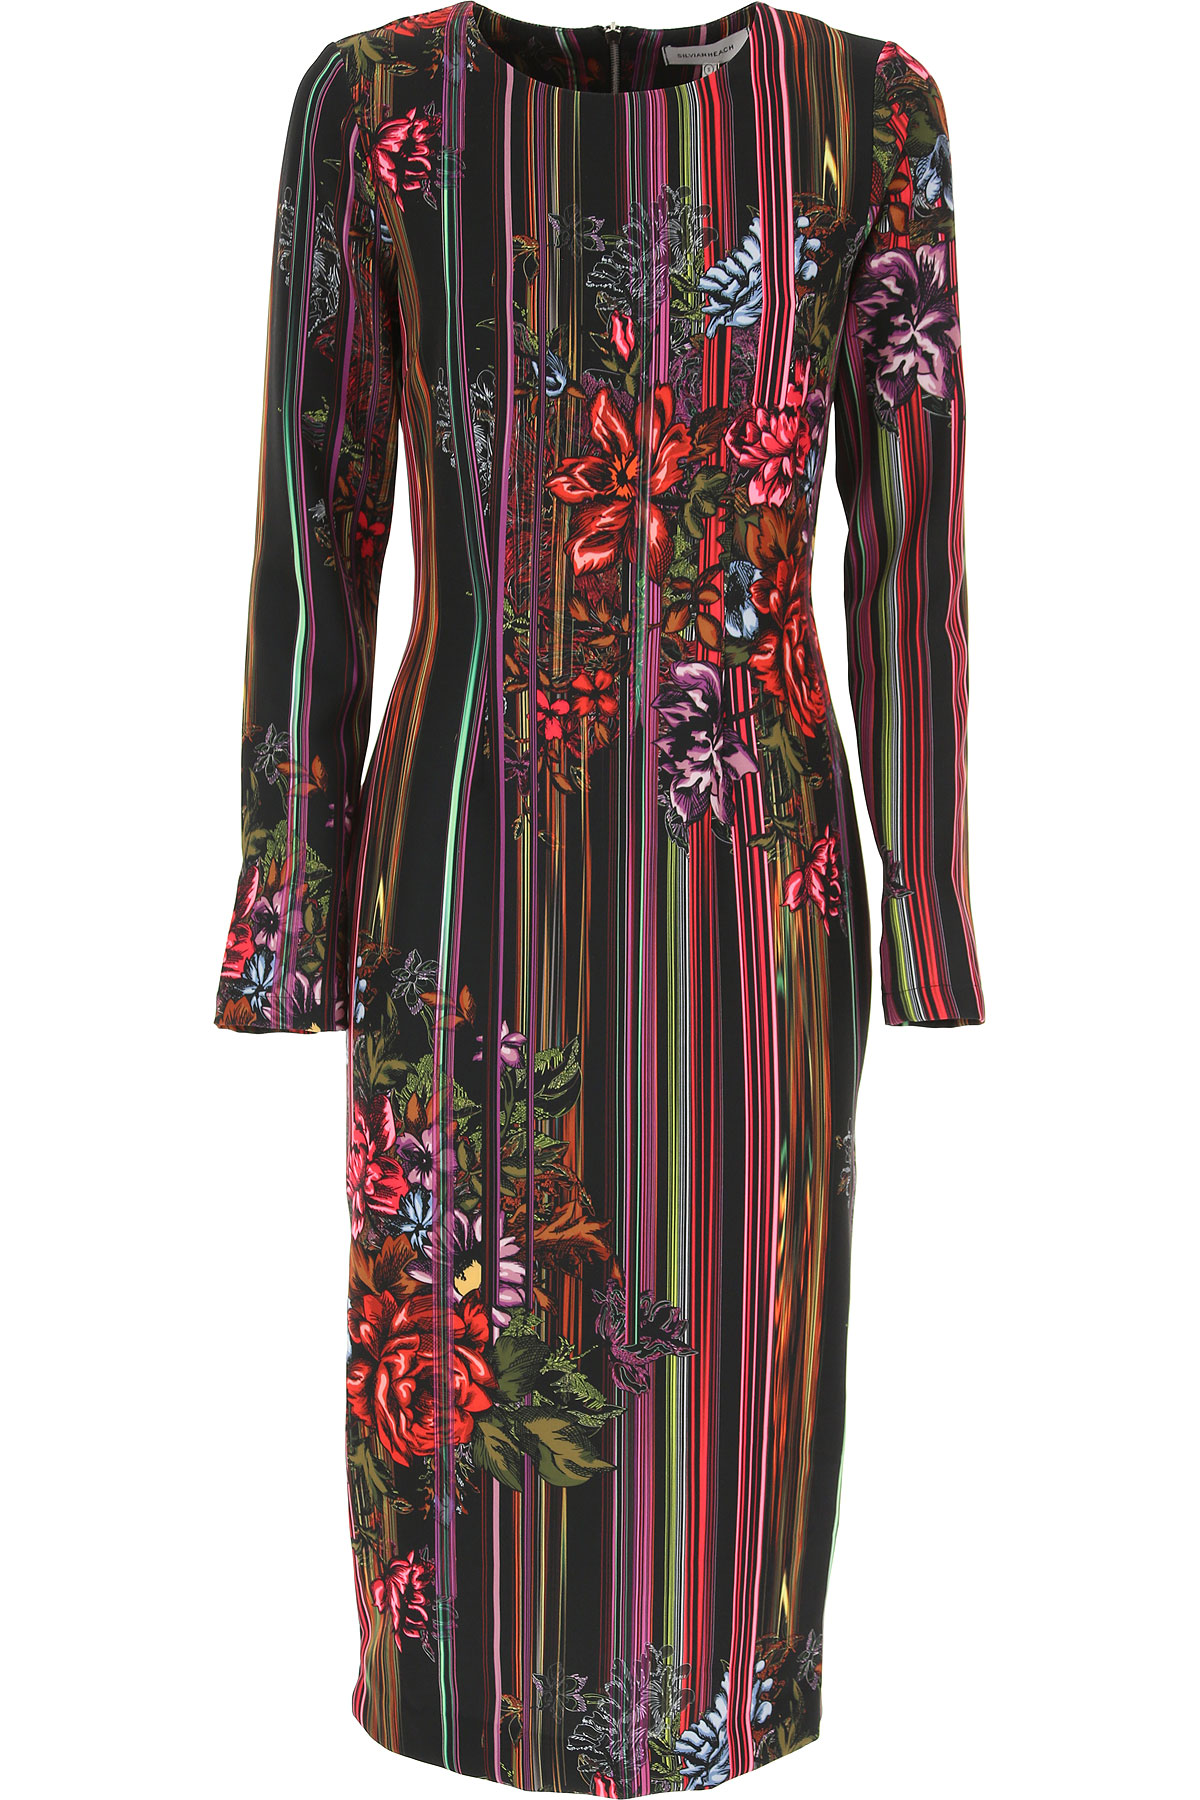 Image of Silvian Heach Dress for Women, Evening Cocktail Party, Multicolor, polyester, 2017, 10 4 6 8